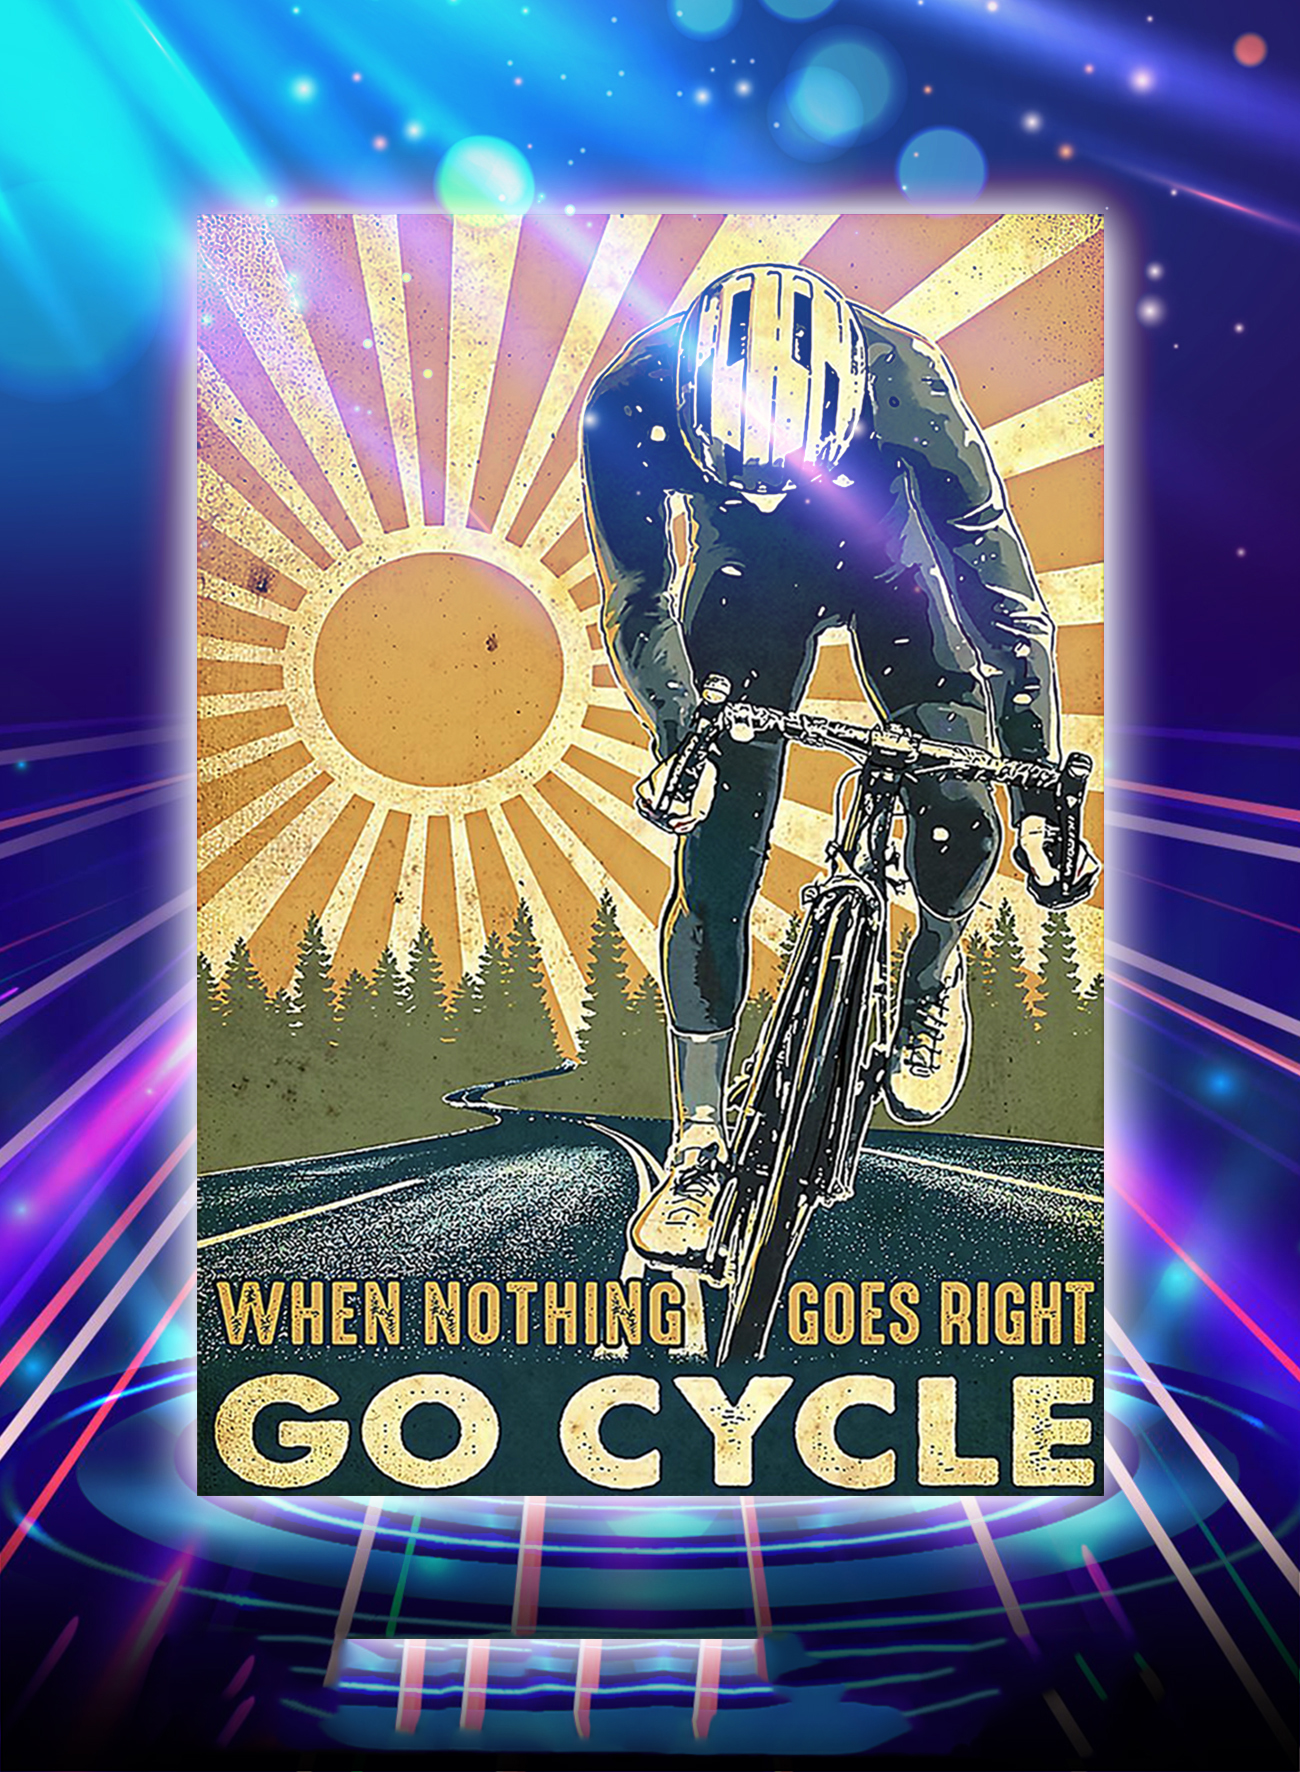 When nothing goes right go cycle poster - A1